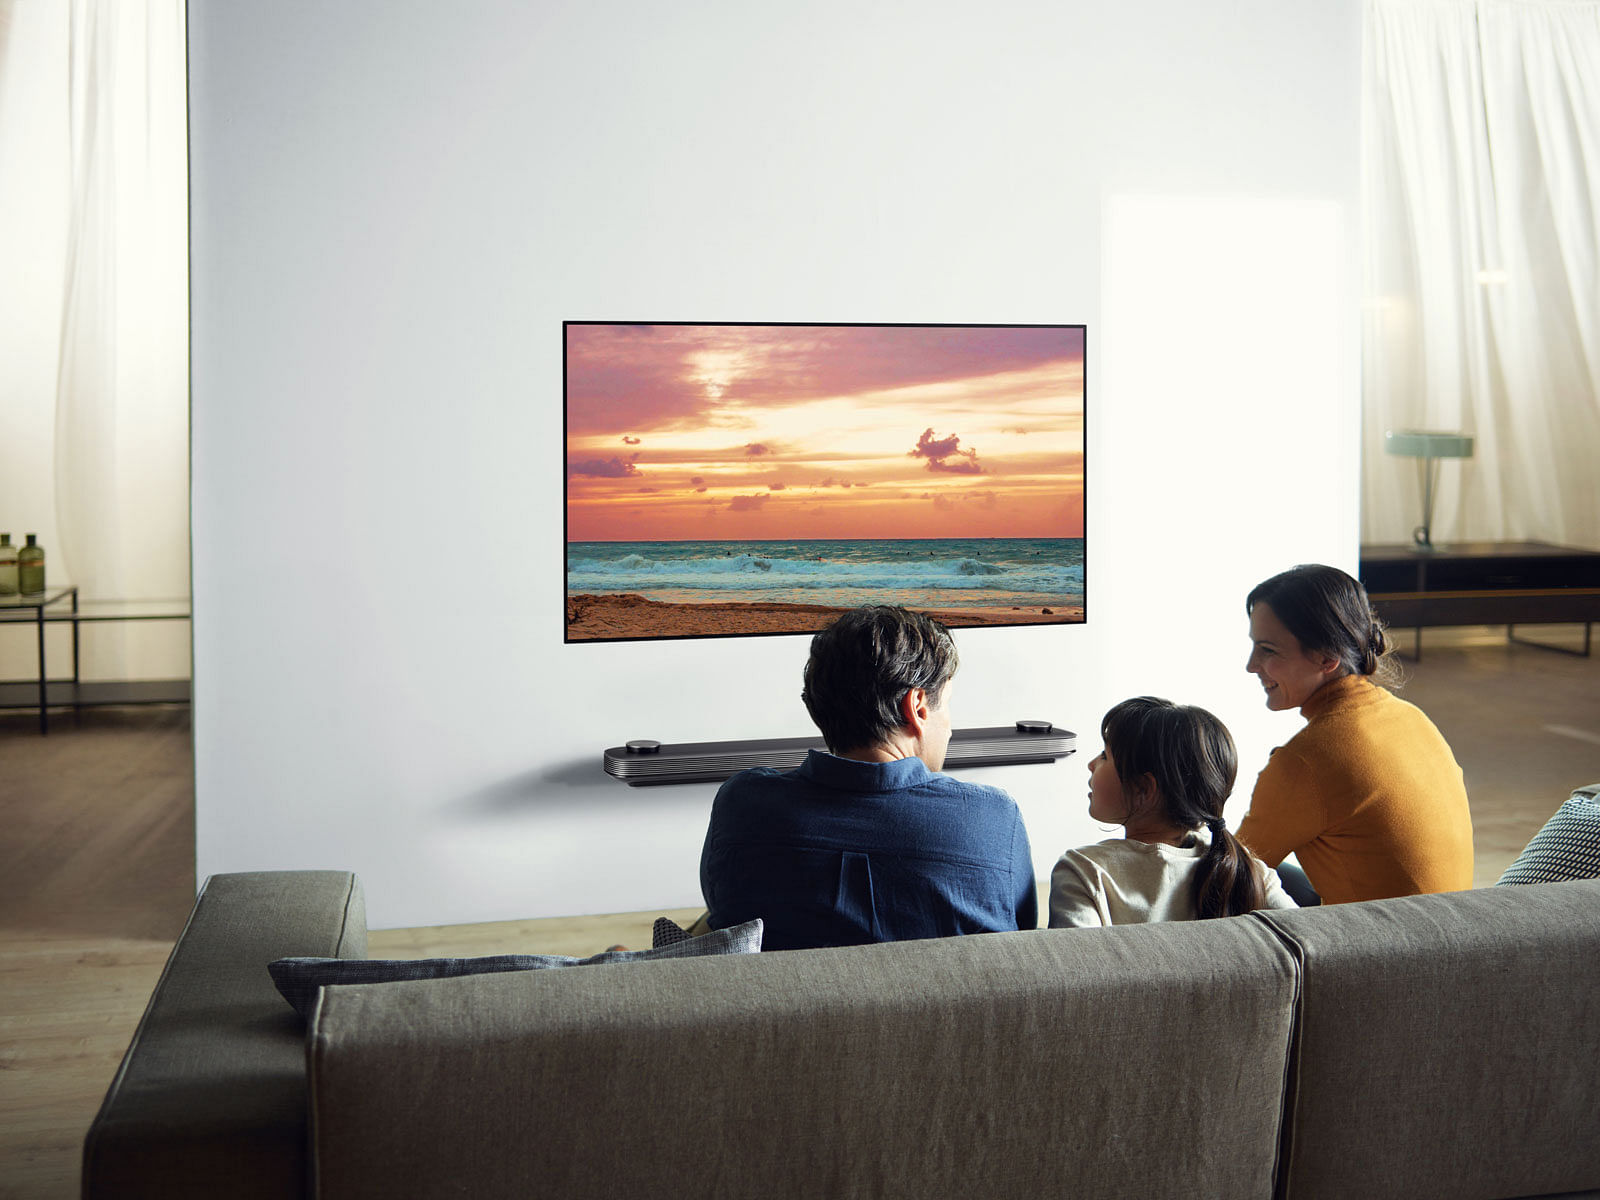 LG OLED TV W is perfect for cinephiles